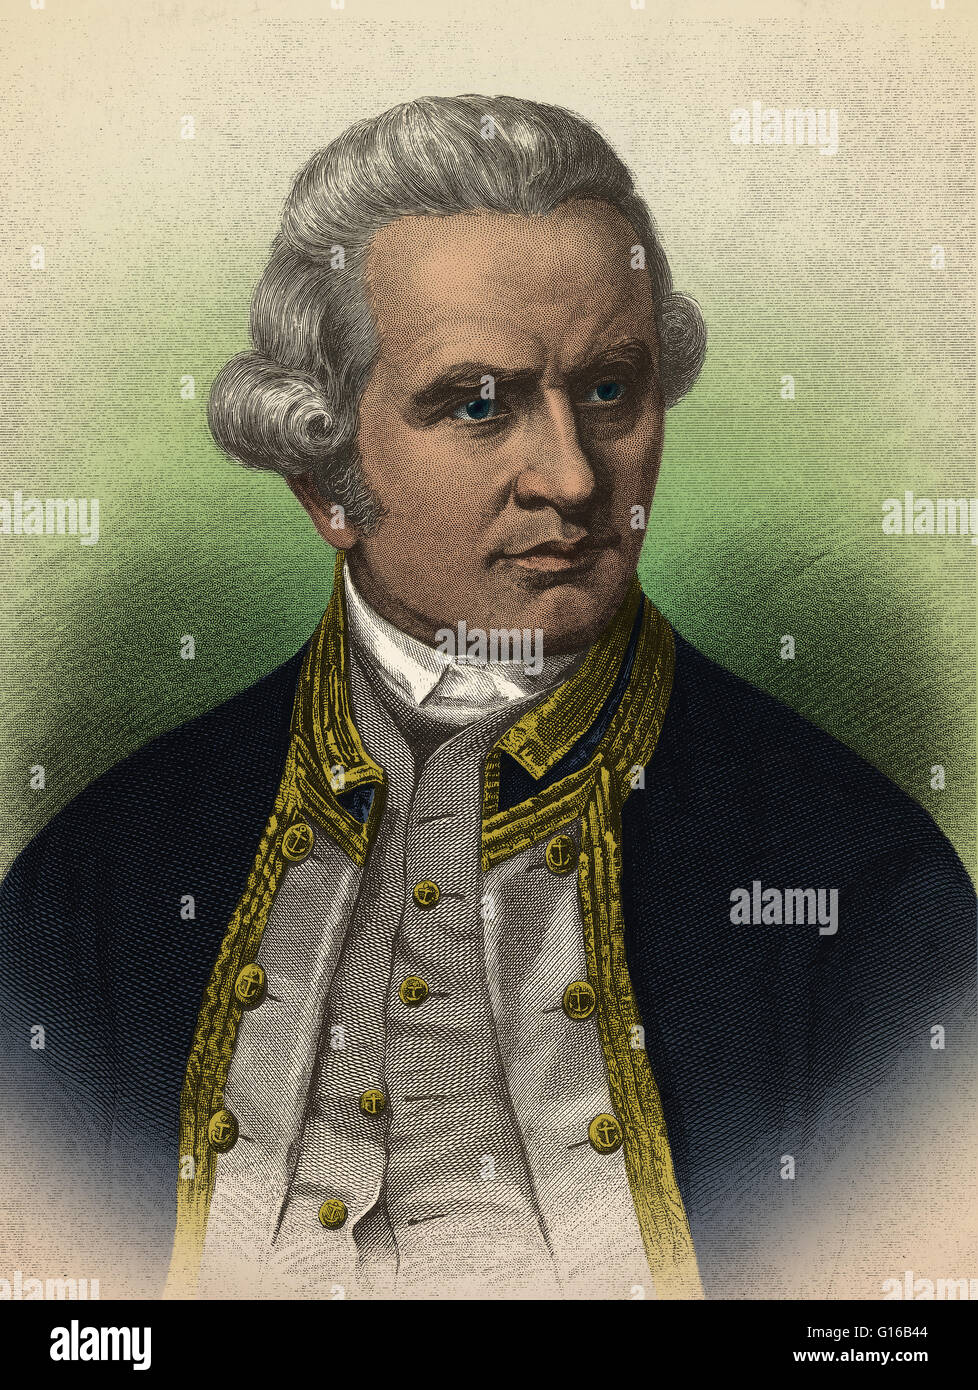 Captain james cook 1728 1779 british explorer after joining captain james cook 1728 1779 british explorer after joining the royal navy cook undertook his first major voyage from 1768 71 accurately mapping new sciox Images